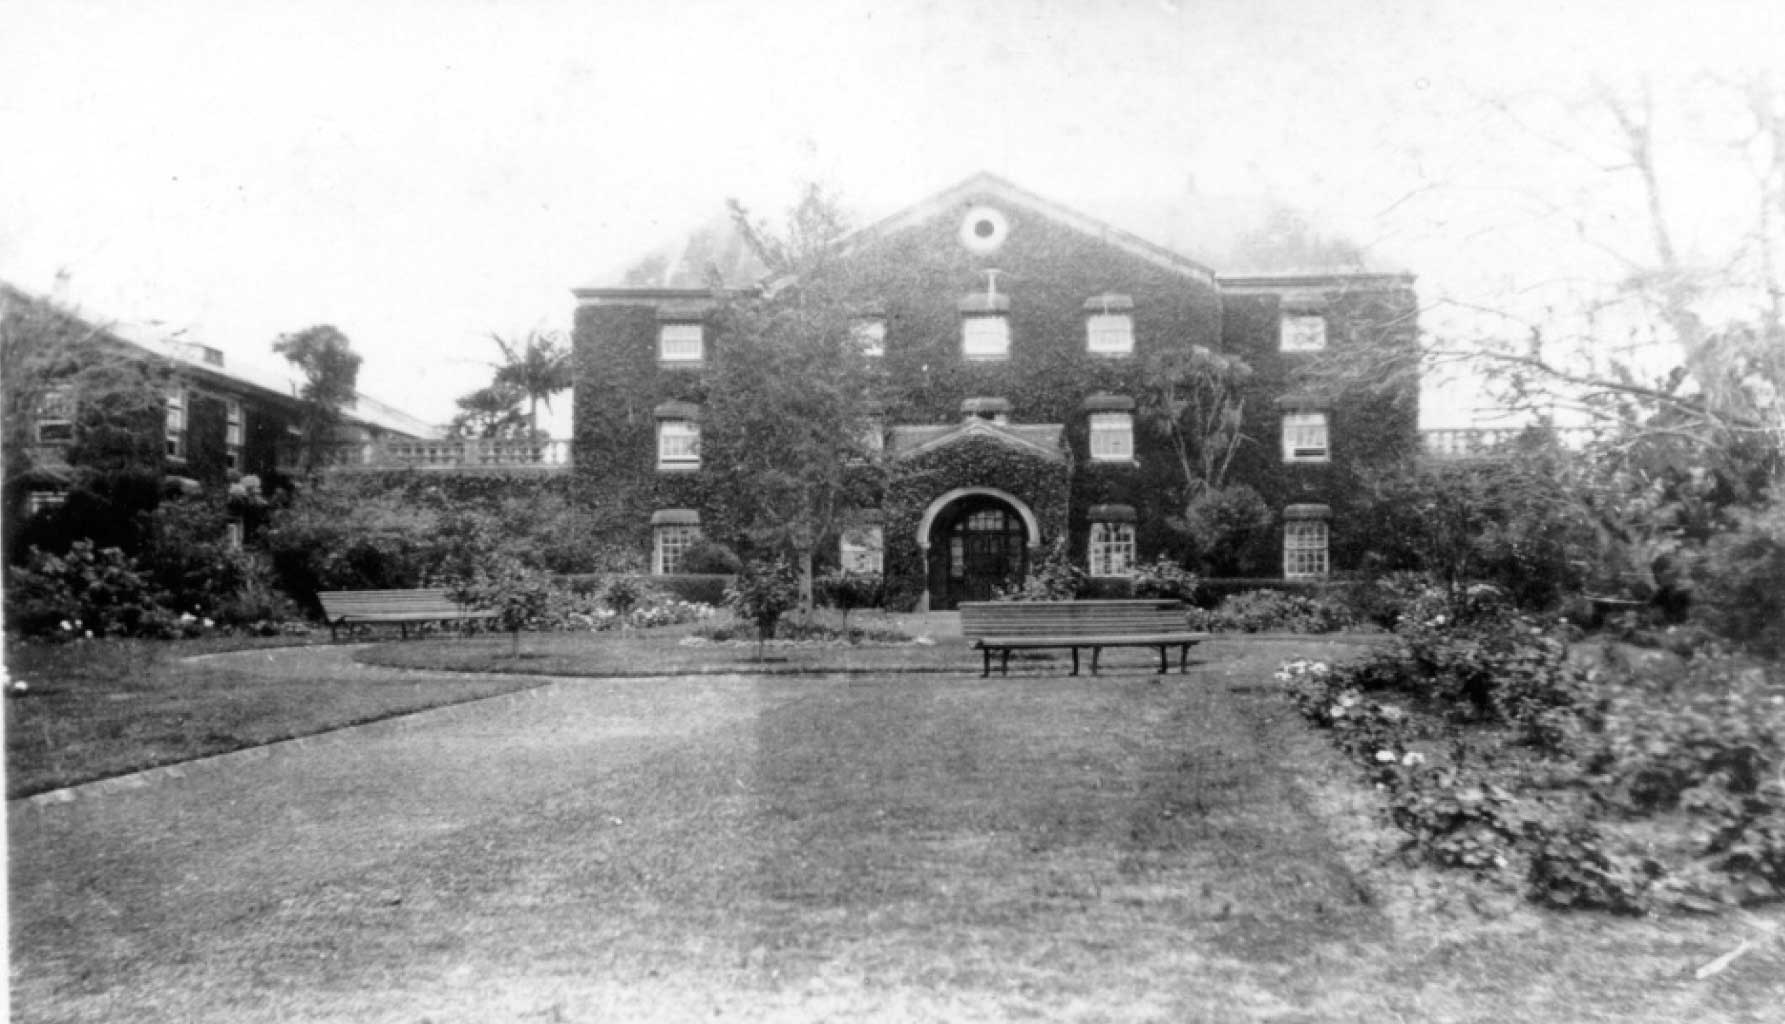 Rydalmere Psychiatric Hospital, around 1920 (Garth McGill Collection)